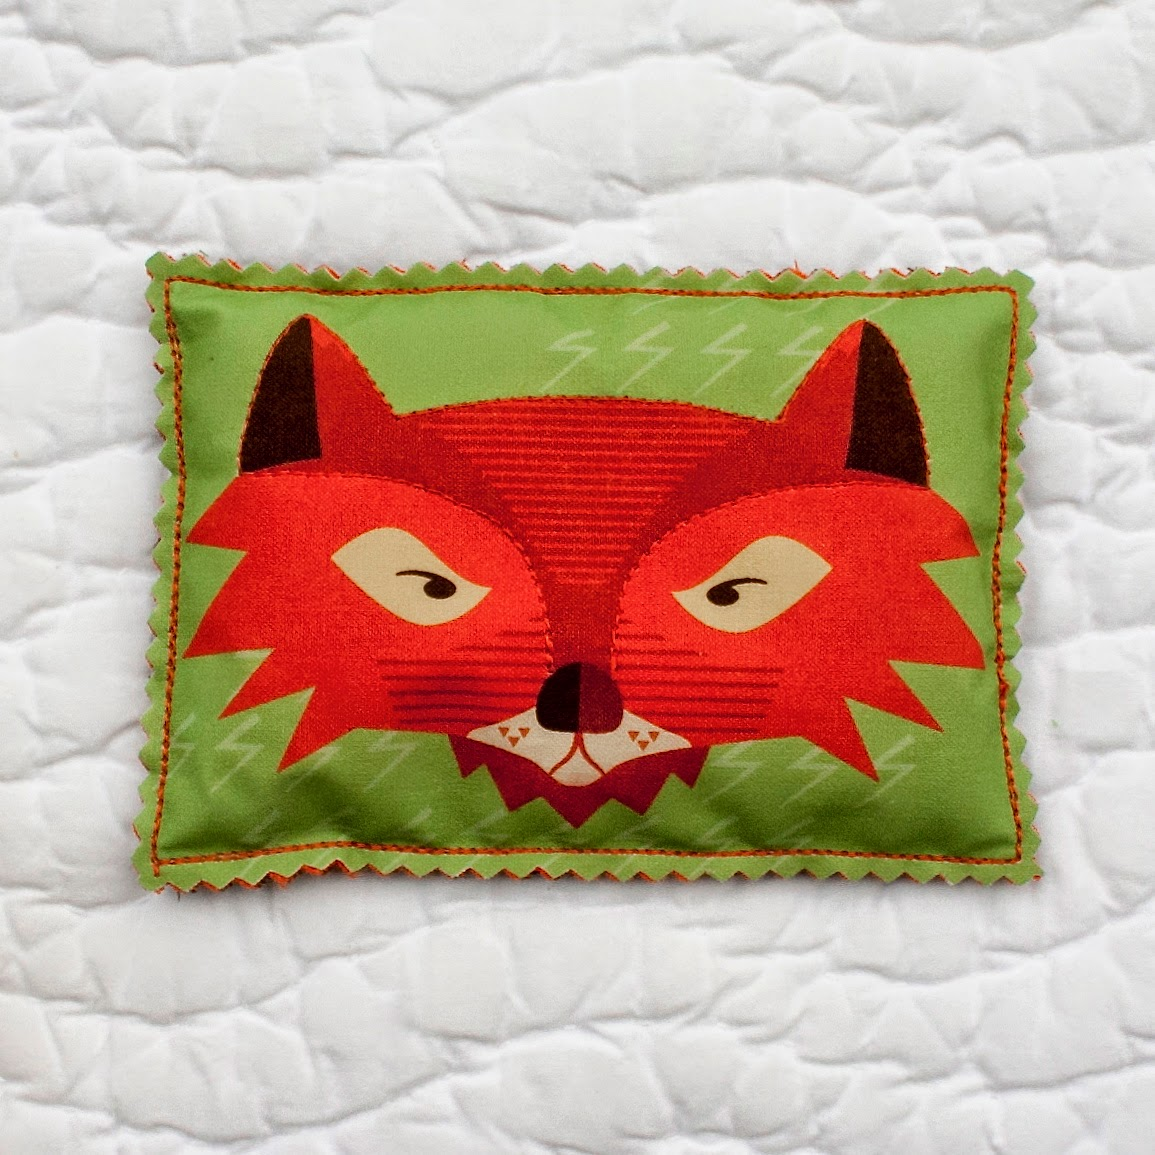 https://www.etsy.com/listing/199910473/fox-heat-pack-red-fox-woodland-creature?ref=listing-shop-header-1